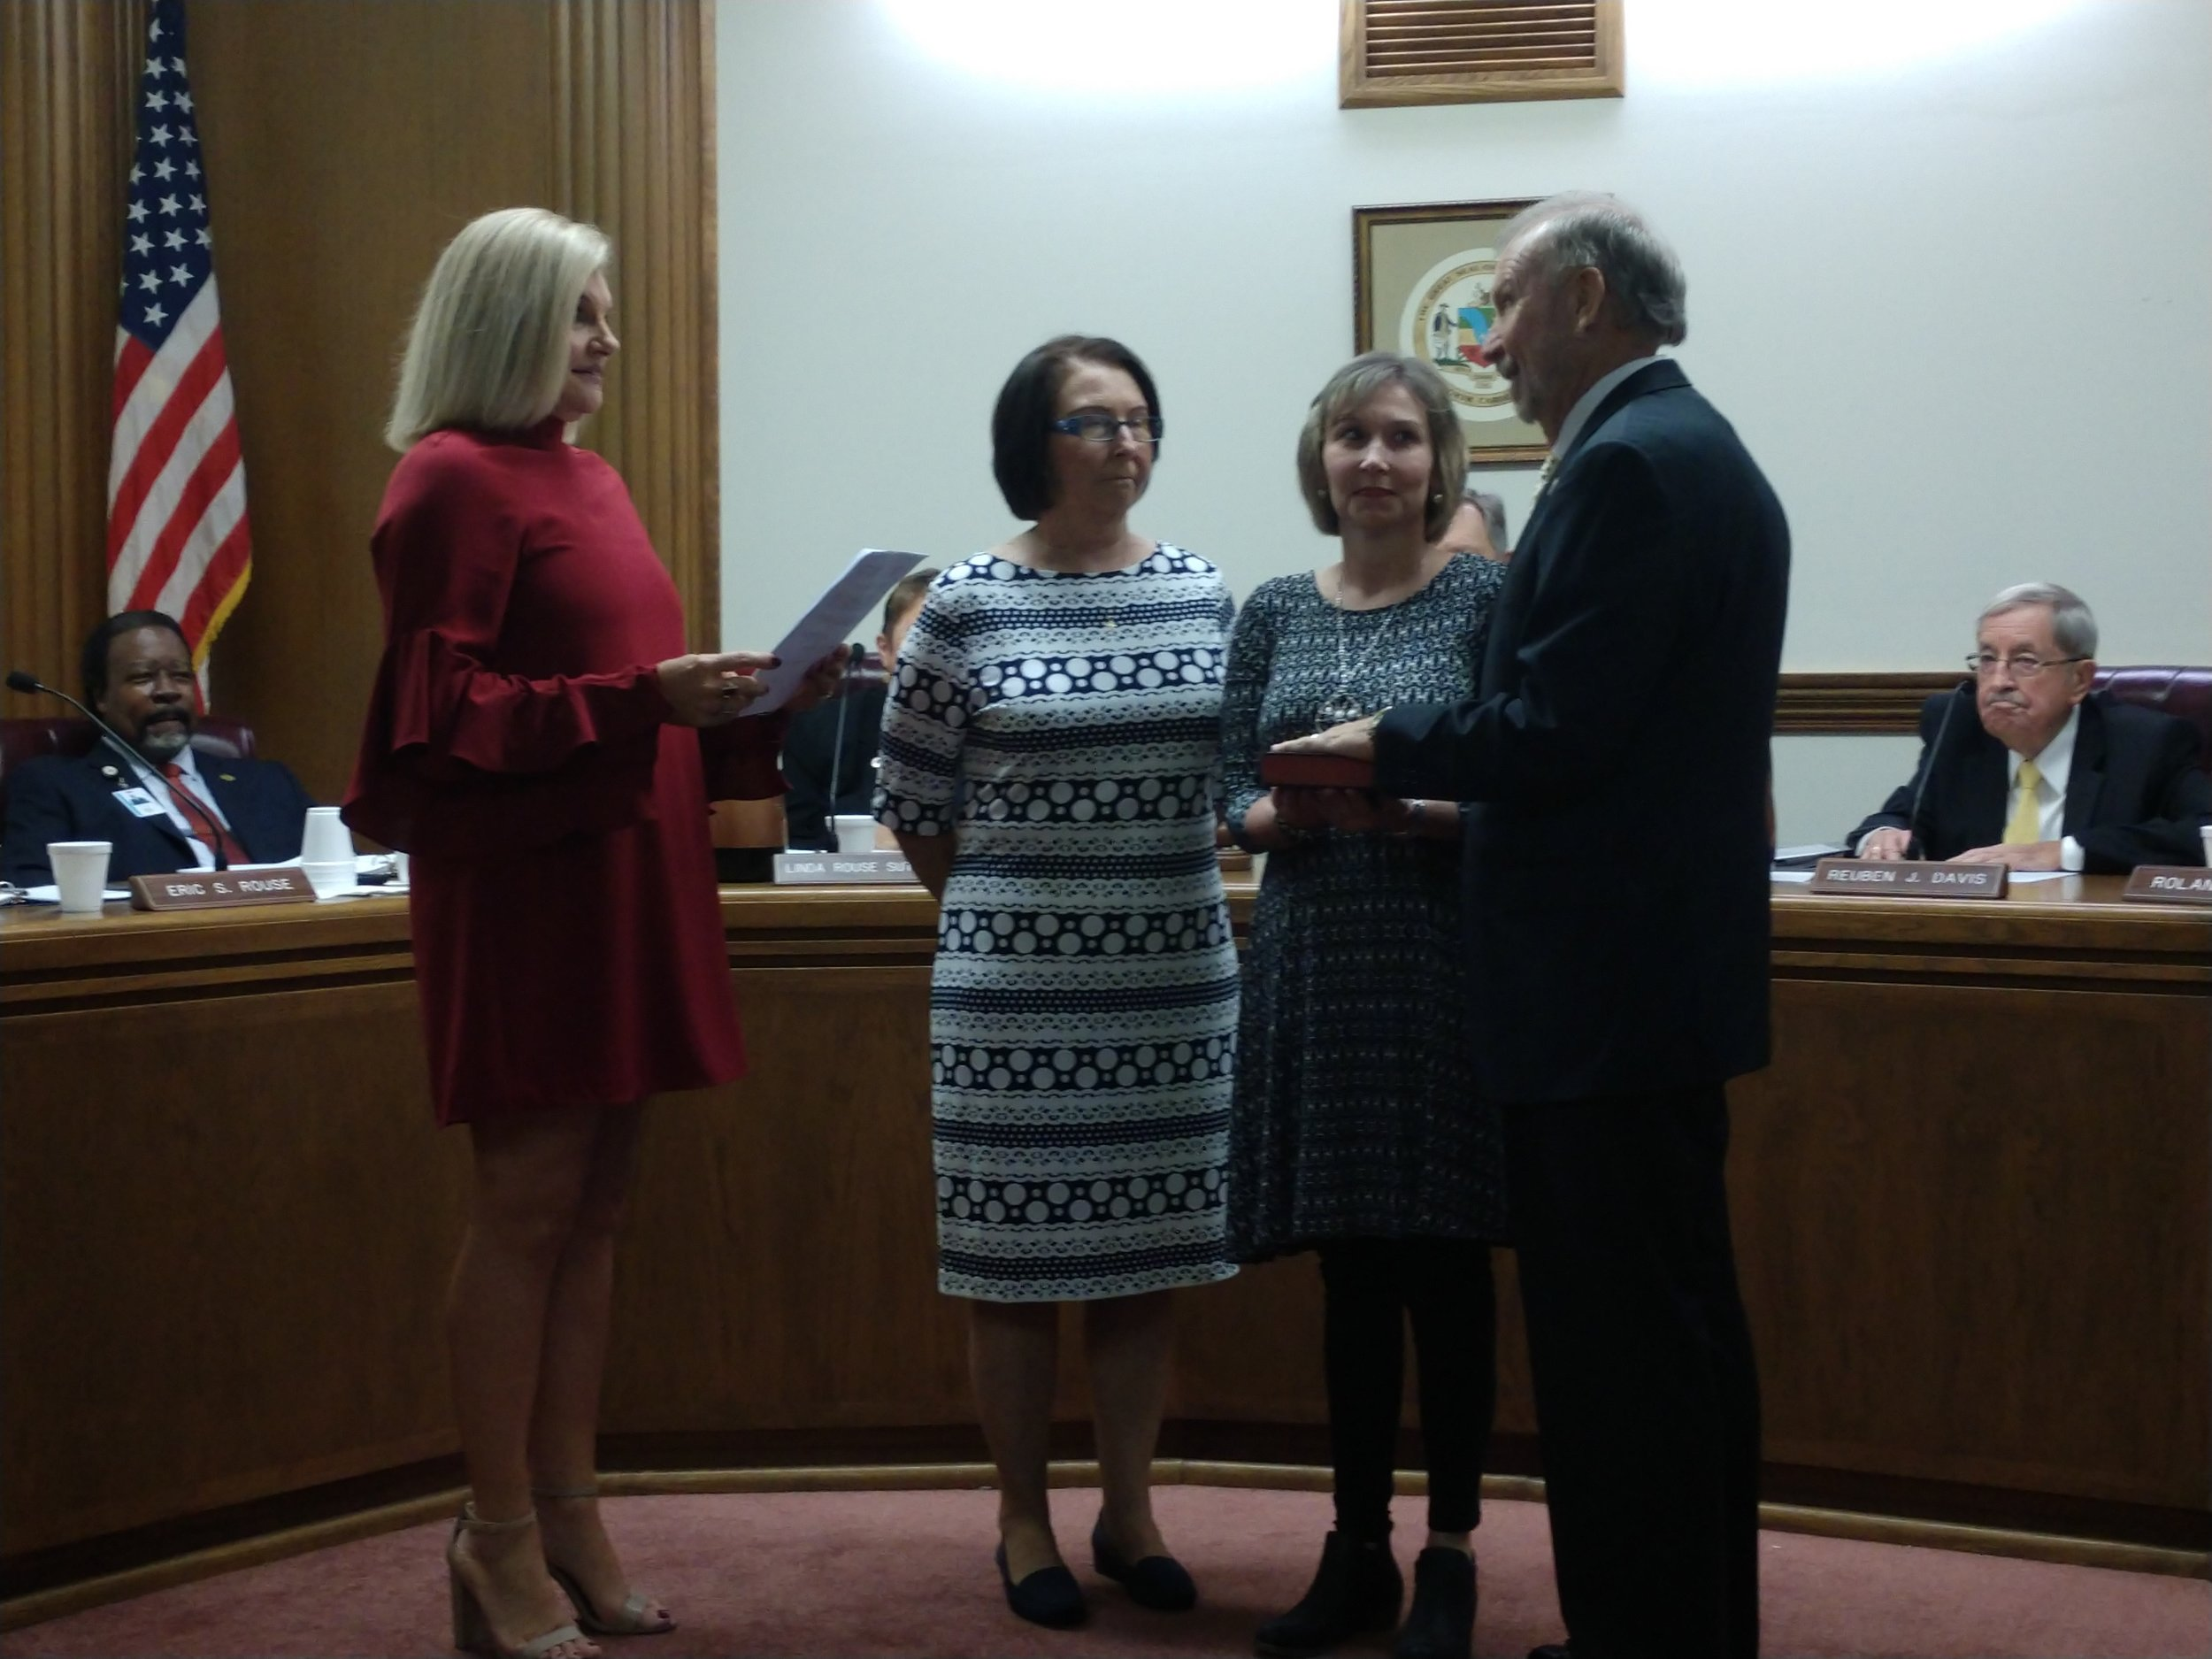 J. Mac Daughety was sworn into office of the Lenoir County Board of Commissioners Monday by Lenoir County Clerk of Courts Dawn Stroud, far left. Next to Daughety is his daughter, Leigh, and wife, Deborah. Photo by Junious Smith III / Neuse News